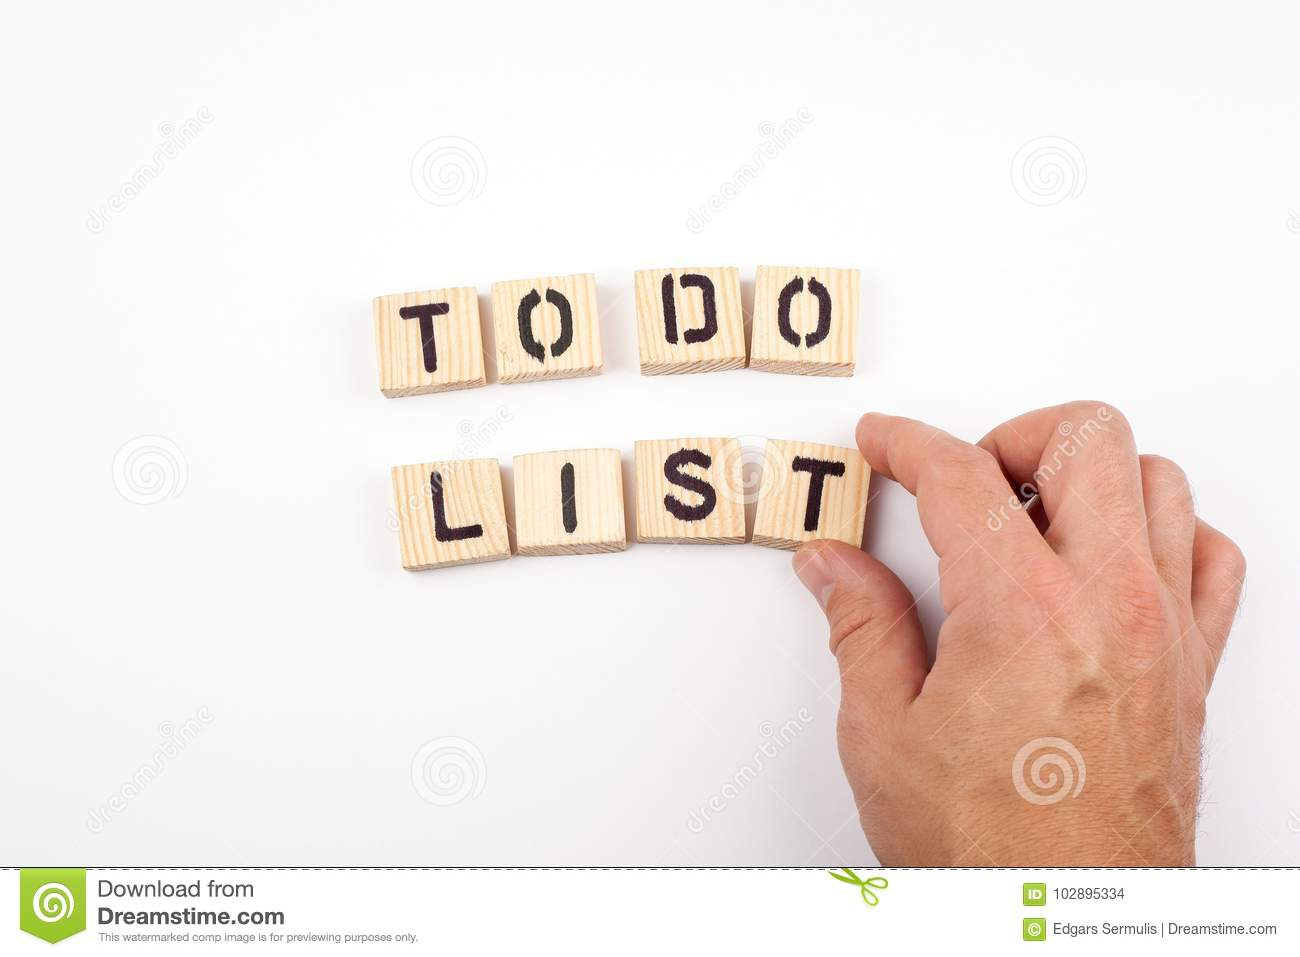 To do list. Wooden letters on a white background